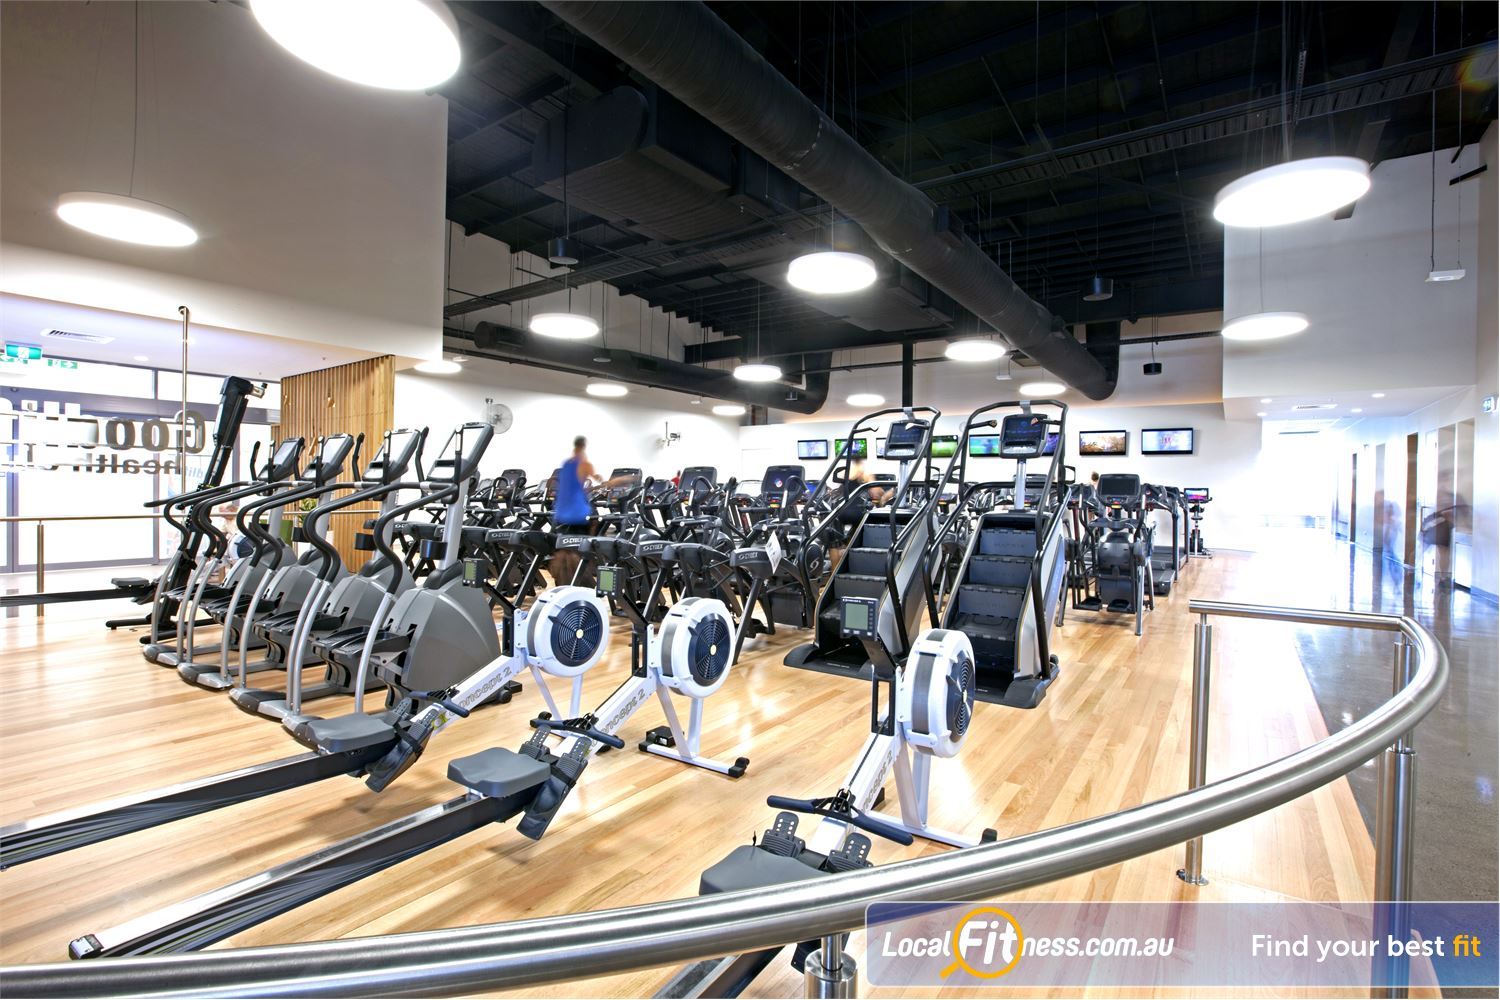 Goodlife Health Clubs Maroochydore Our Maroochydore gym boasts some of Queensland's best fitness facilities.